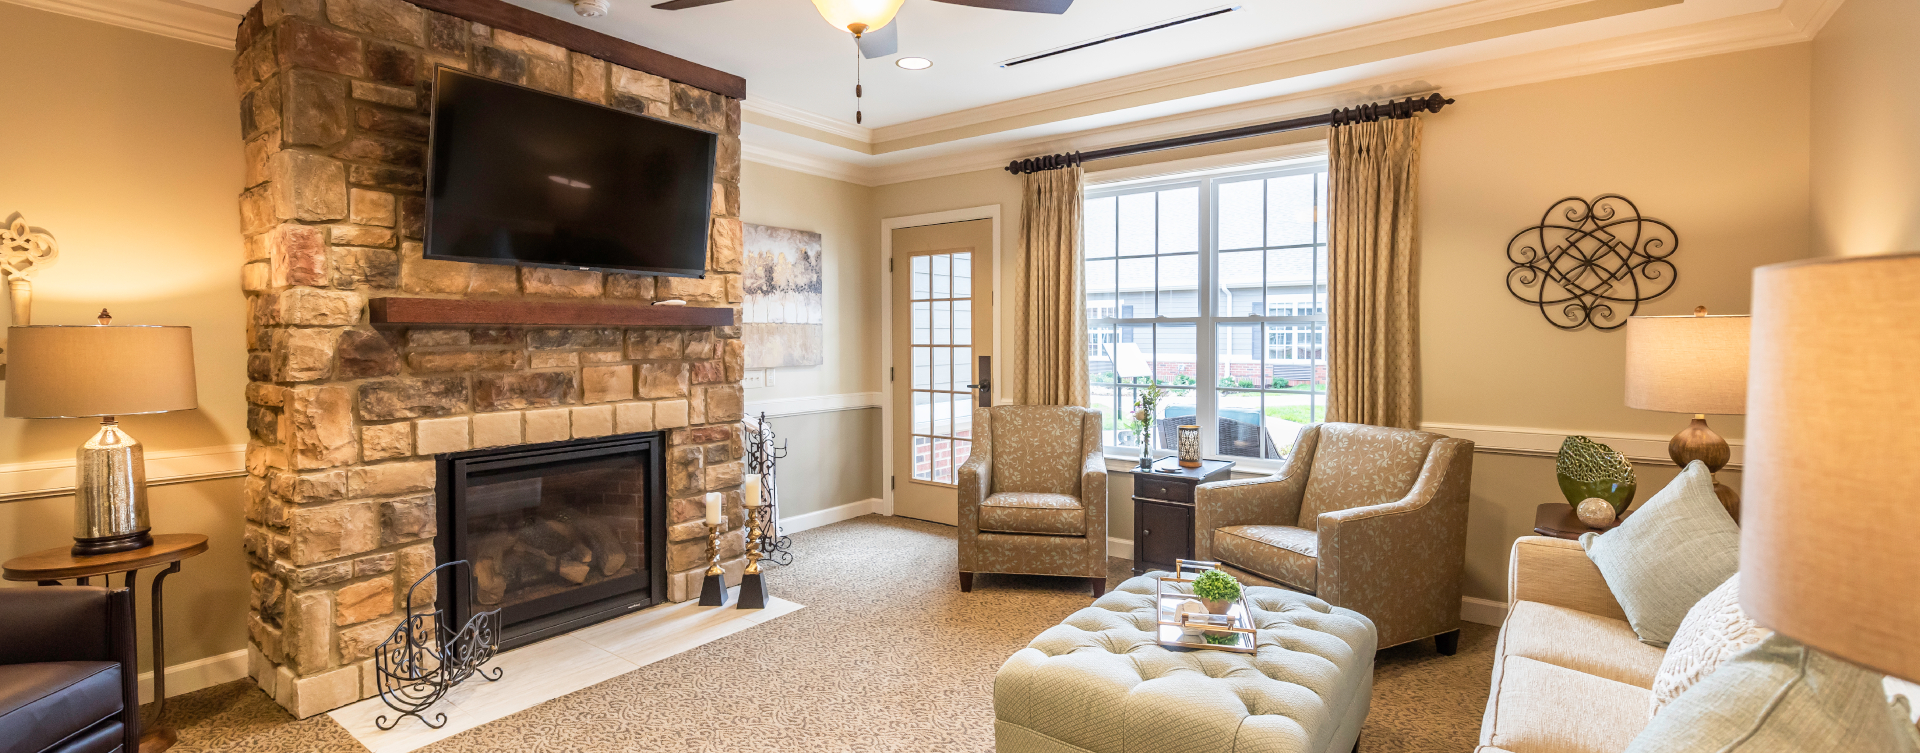 Enjoy a good snooze in the sitting area at Bickford of Shelby Township